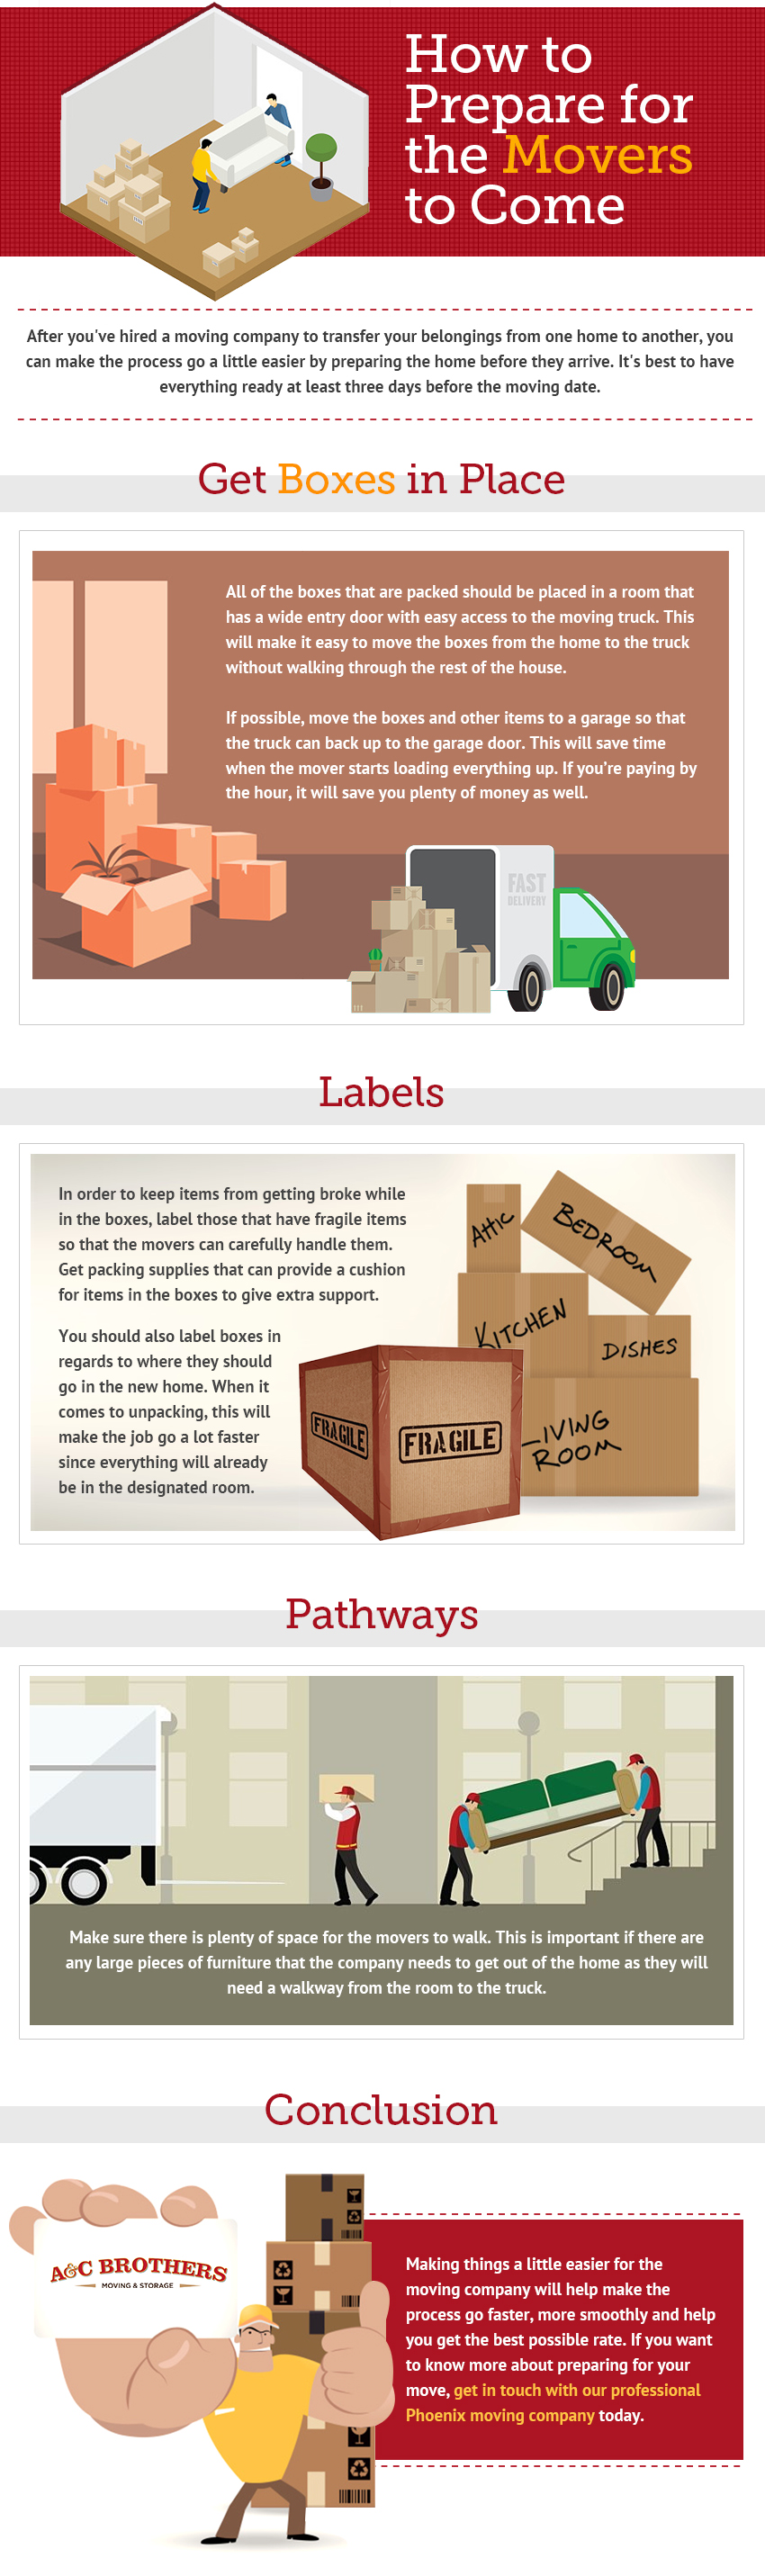 how-to-prepare-for-the-movers-to-come-infographic